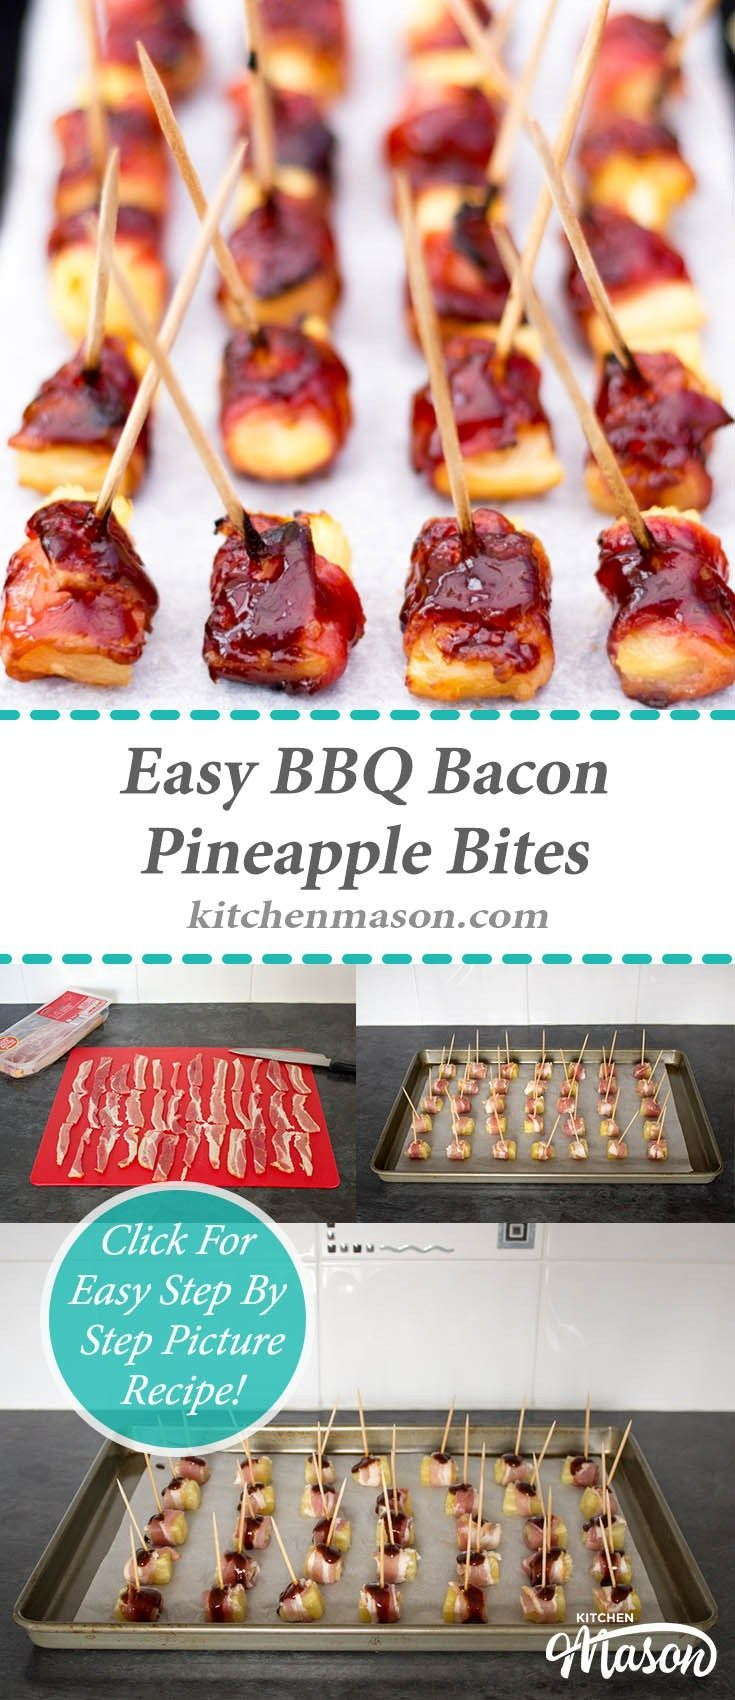 Christmas Bbq Party Ideas Part - 45: BBQ Bacon Pineapple Bites